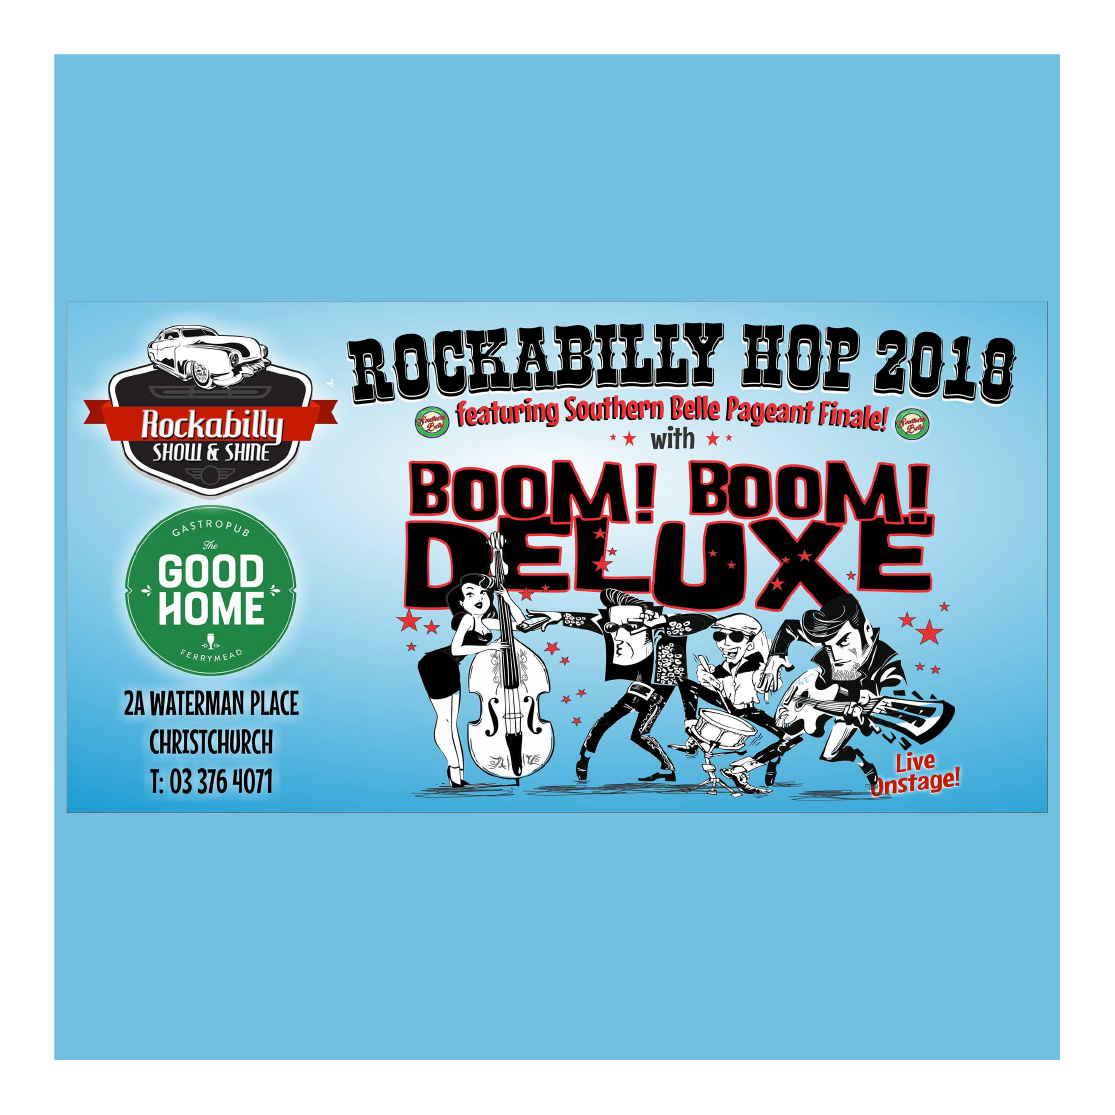 Rockabilly Show & Shine